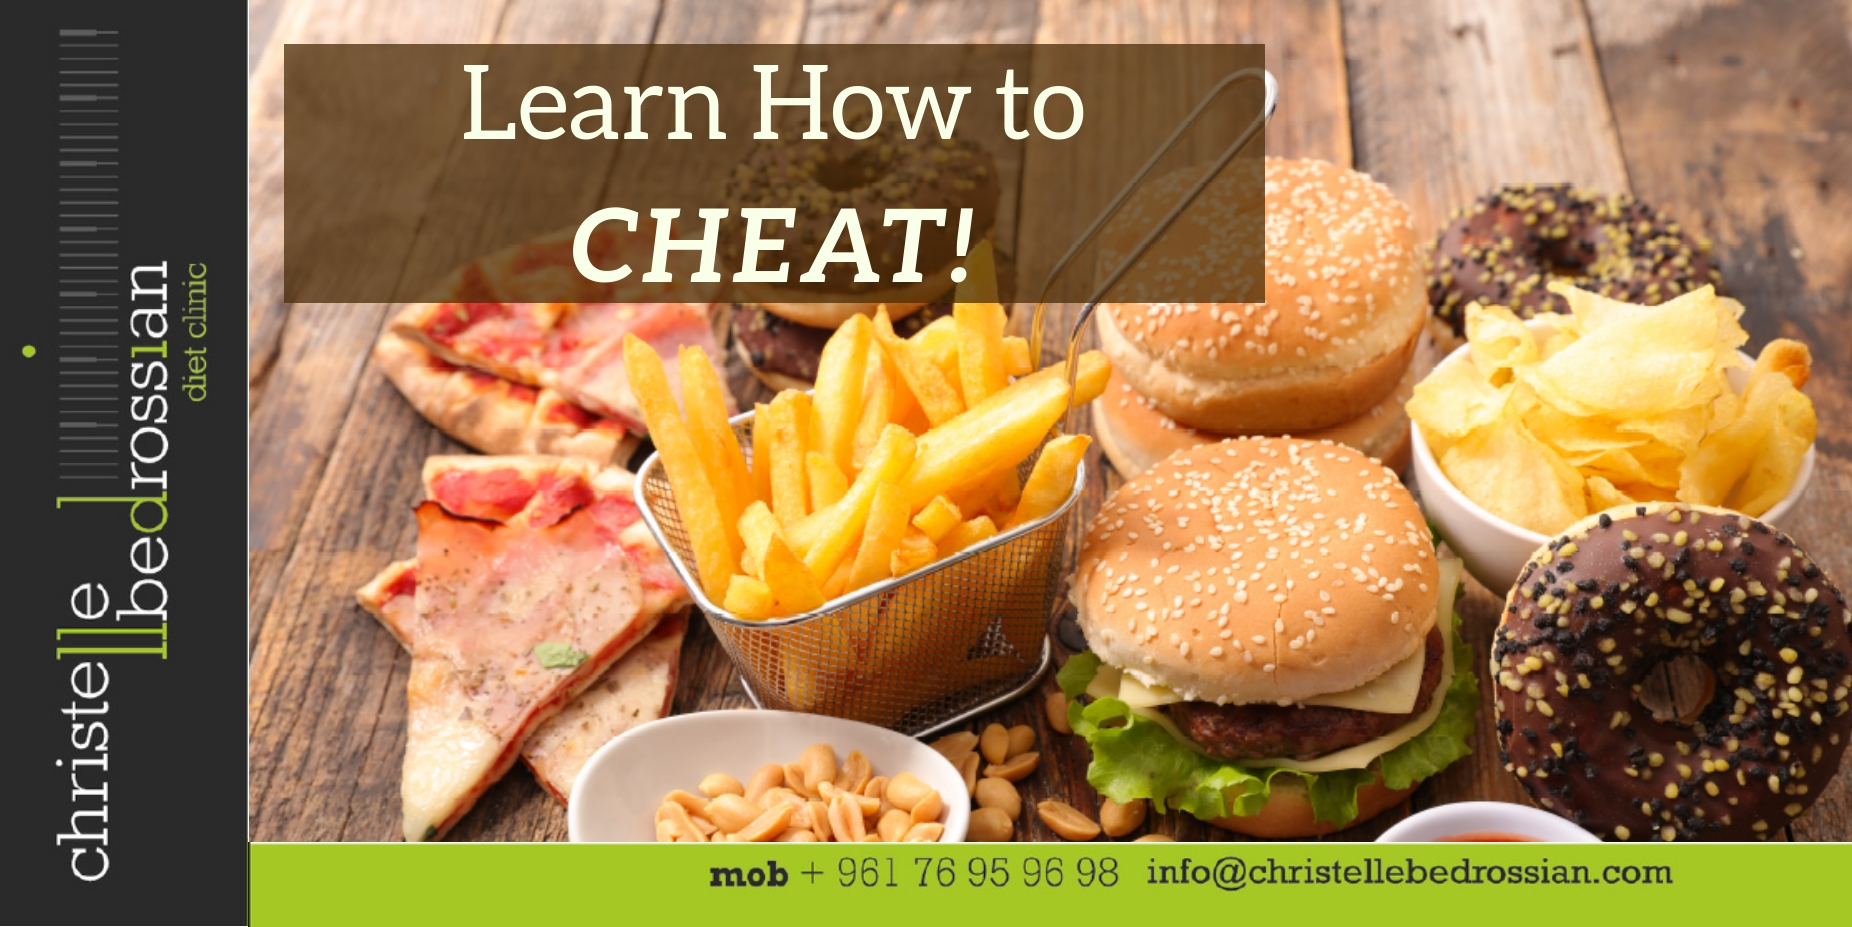 best dietitian lebanon, lebanon, health, healthy tips, cheating, learn how to cheat